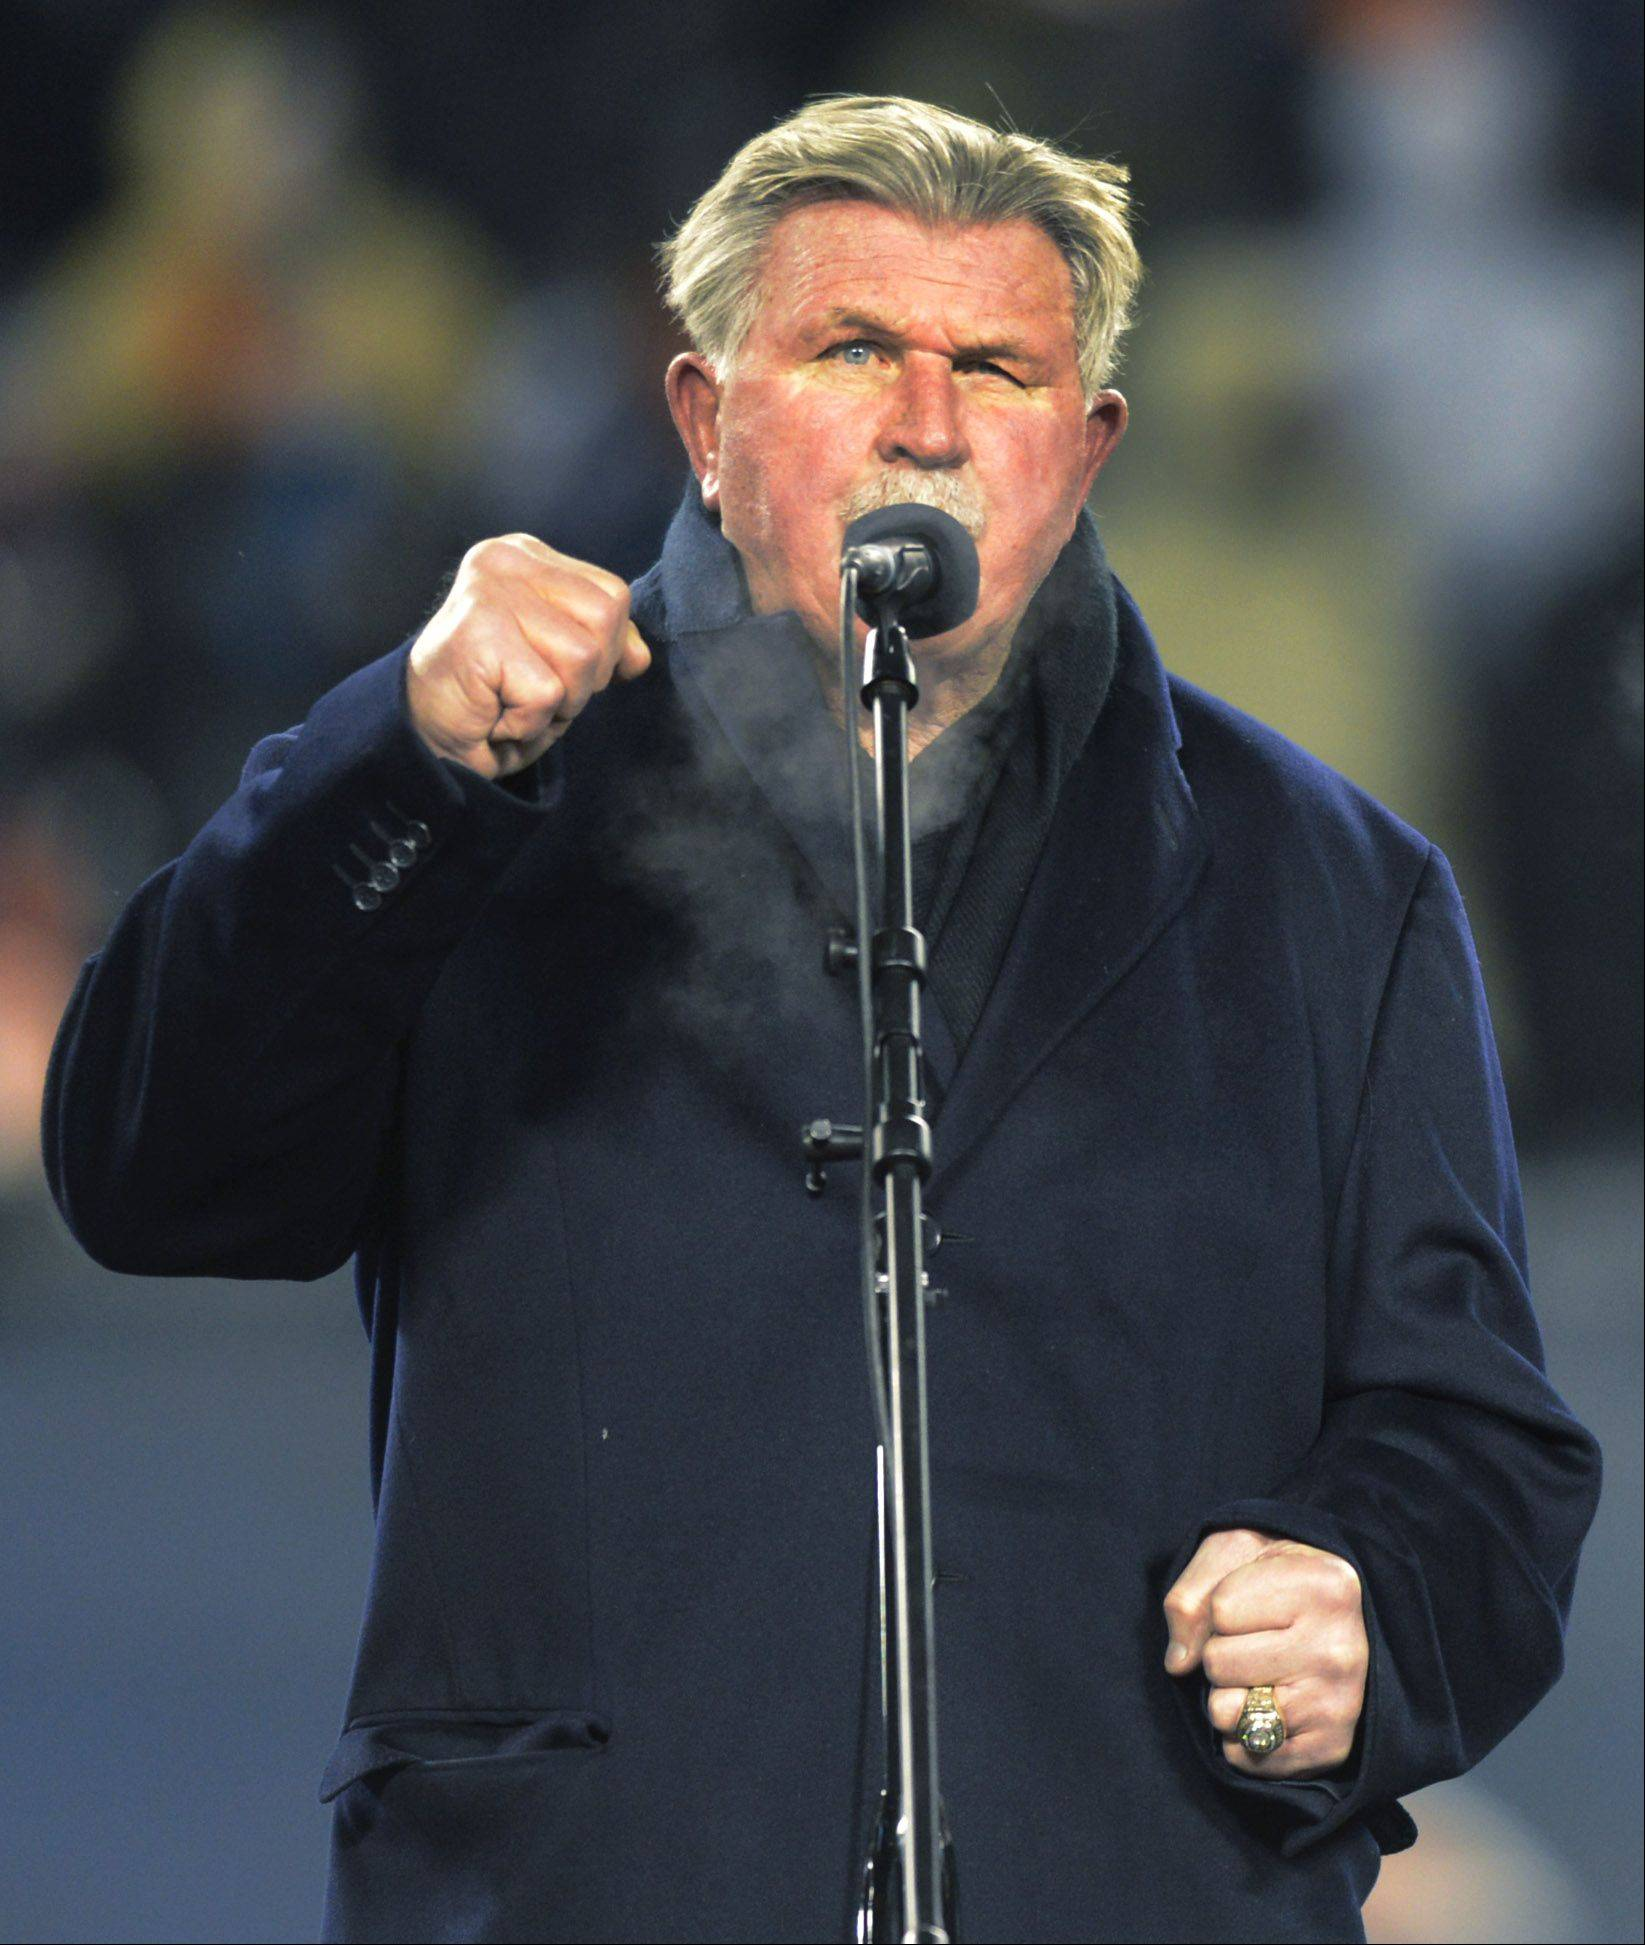 Former Chicago Bears coach and player Mike Ditka speaks as his number is retired.